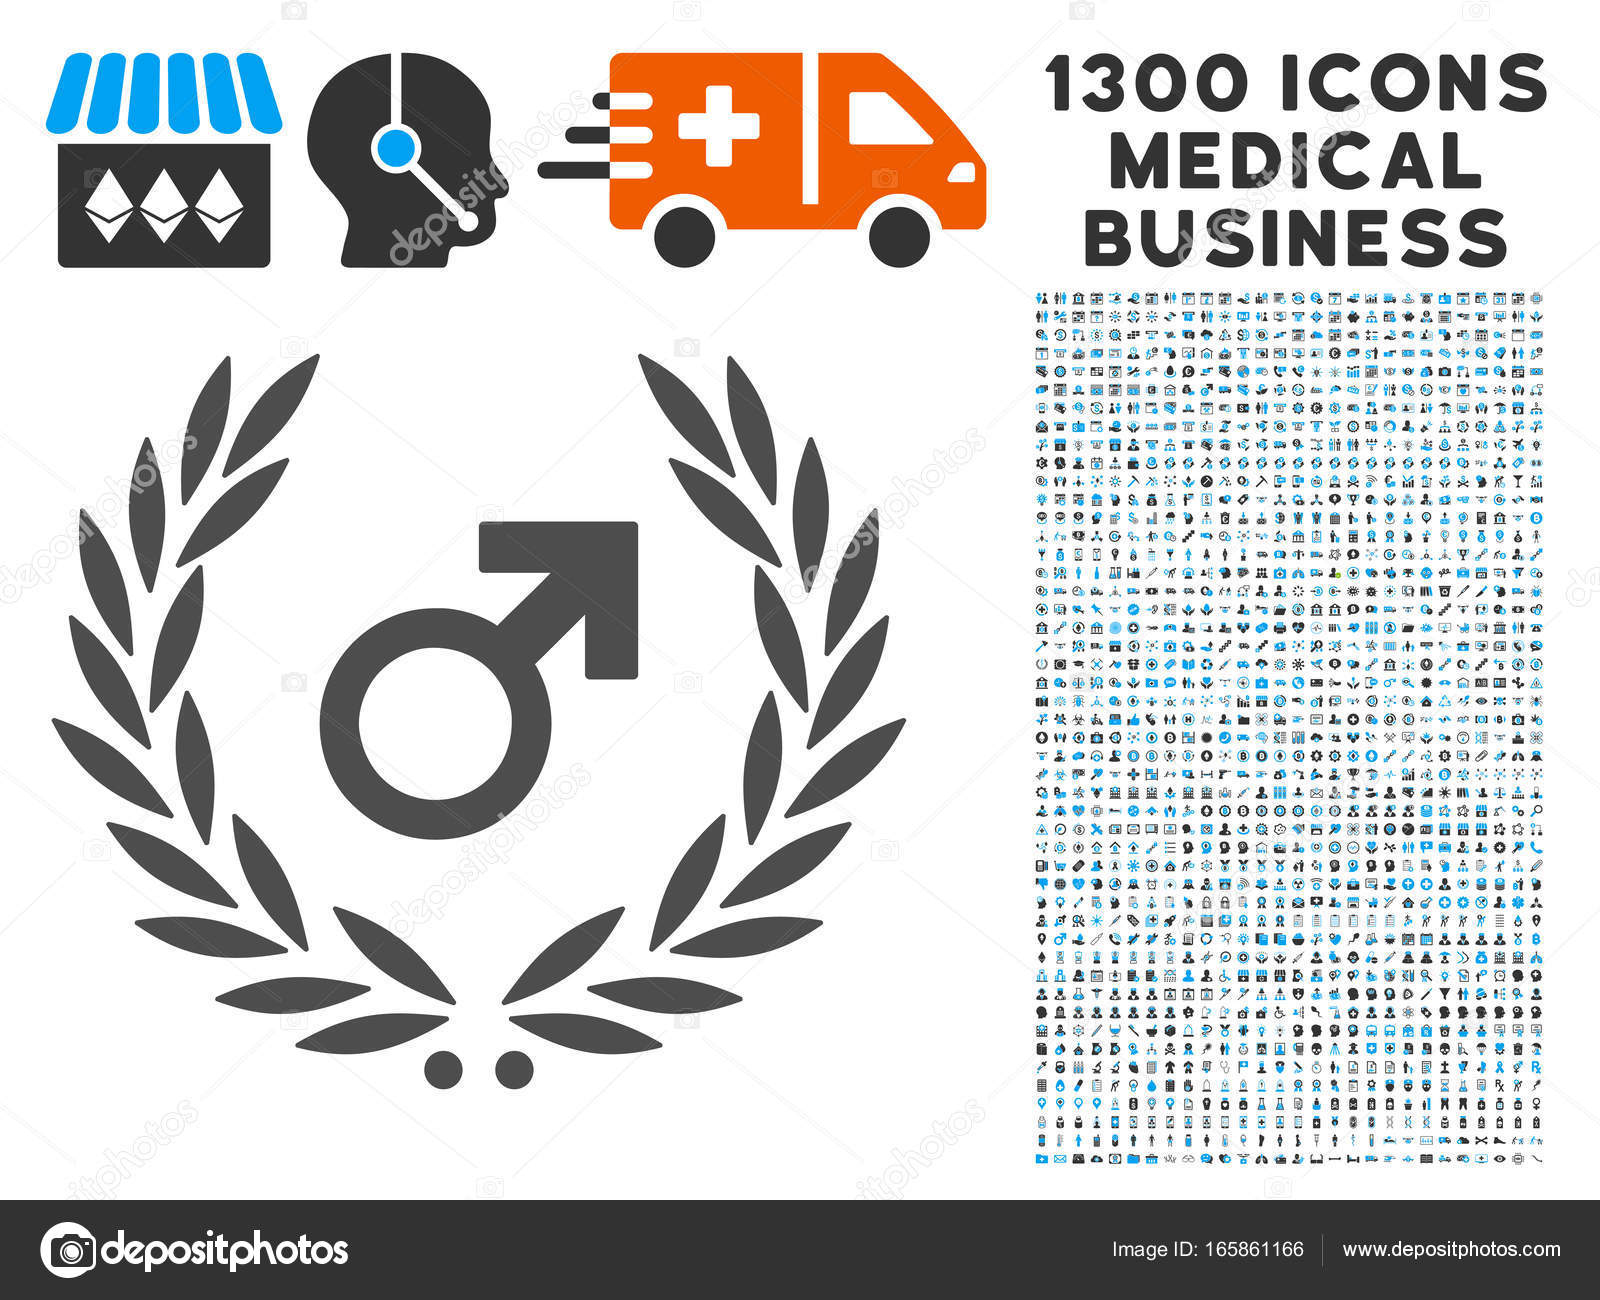 Male symbol laurel wreath icon with 1300 medical business icons male symbol laurel wreath icon with 1300 medical business icons stock vector buycottarizona Images